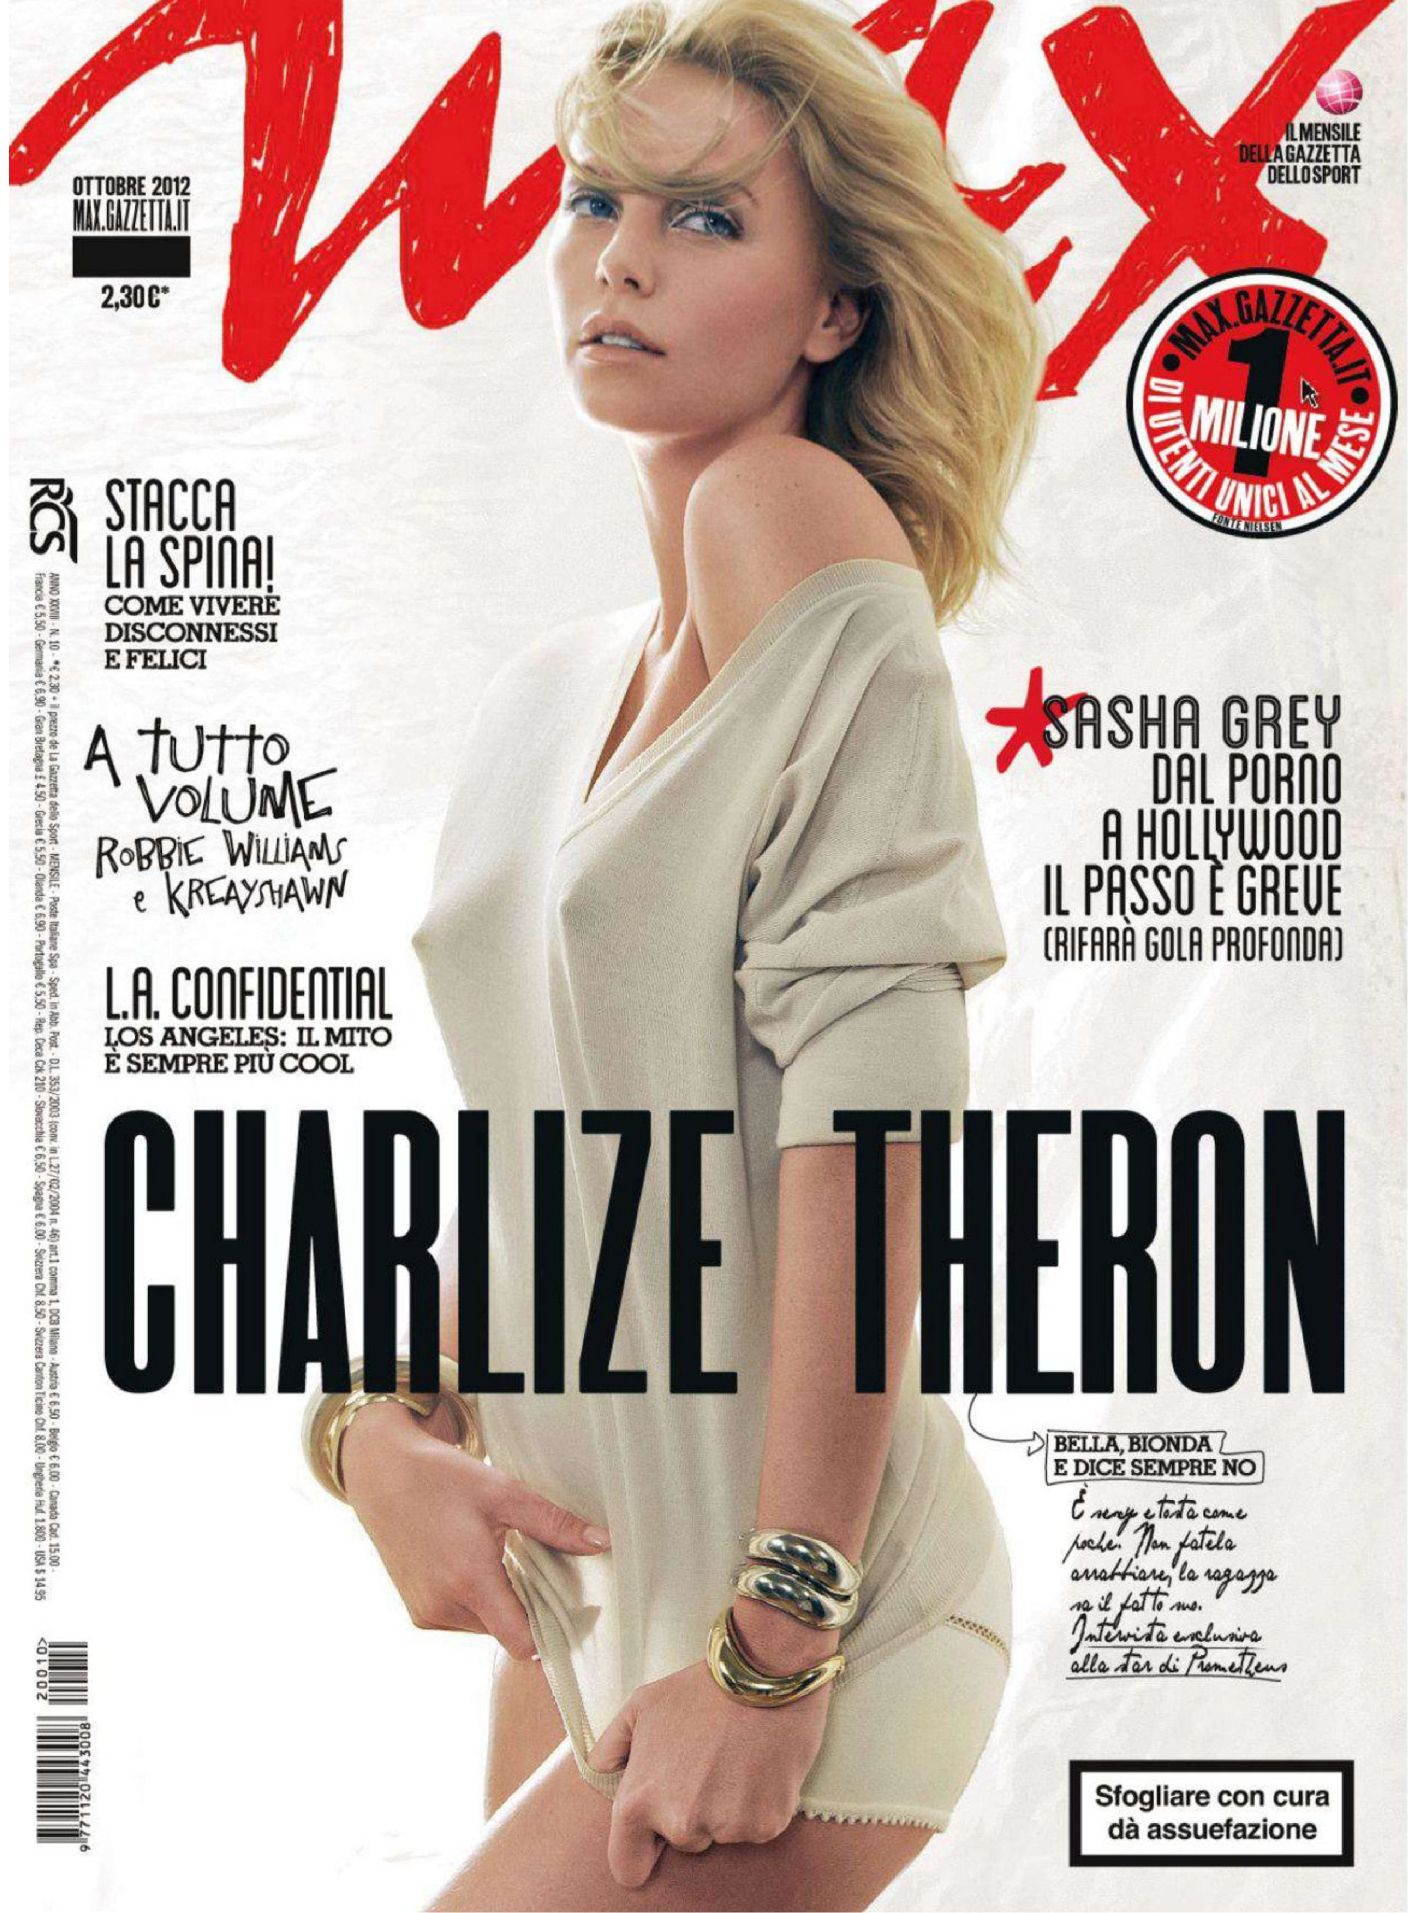 Charlize Theron 02 12